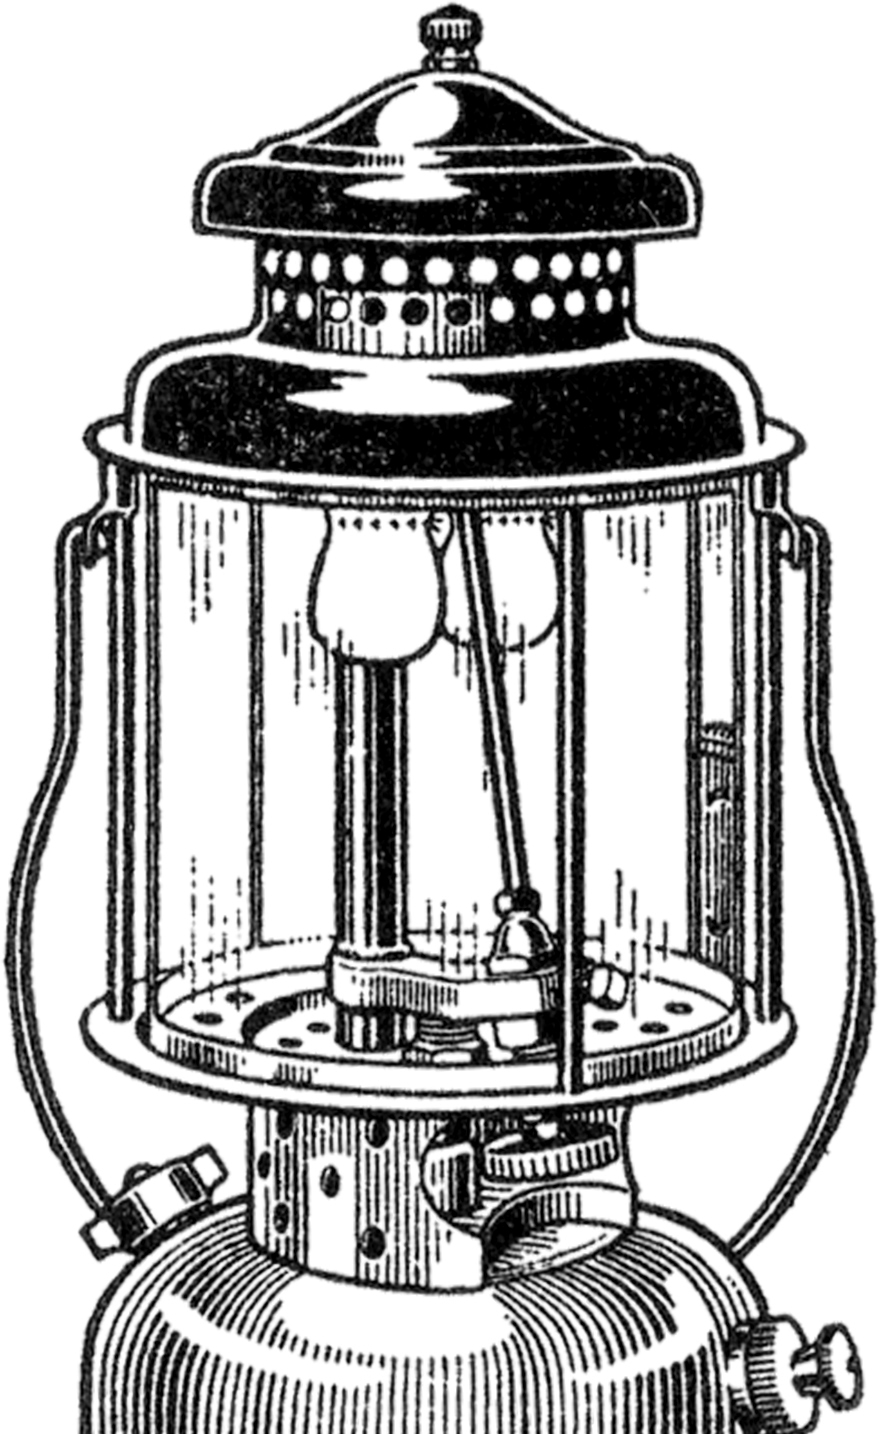 Camping lantern clipart black and white.